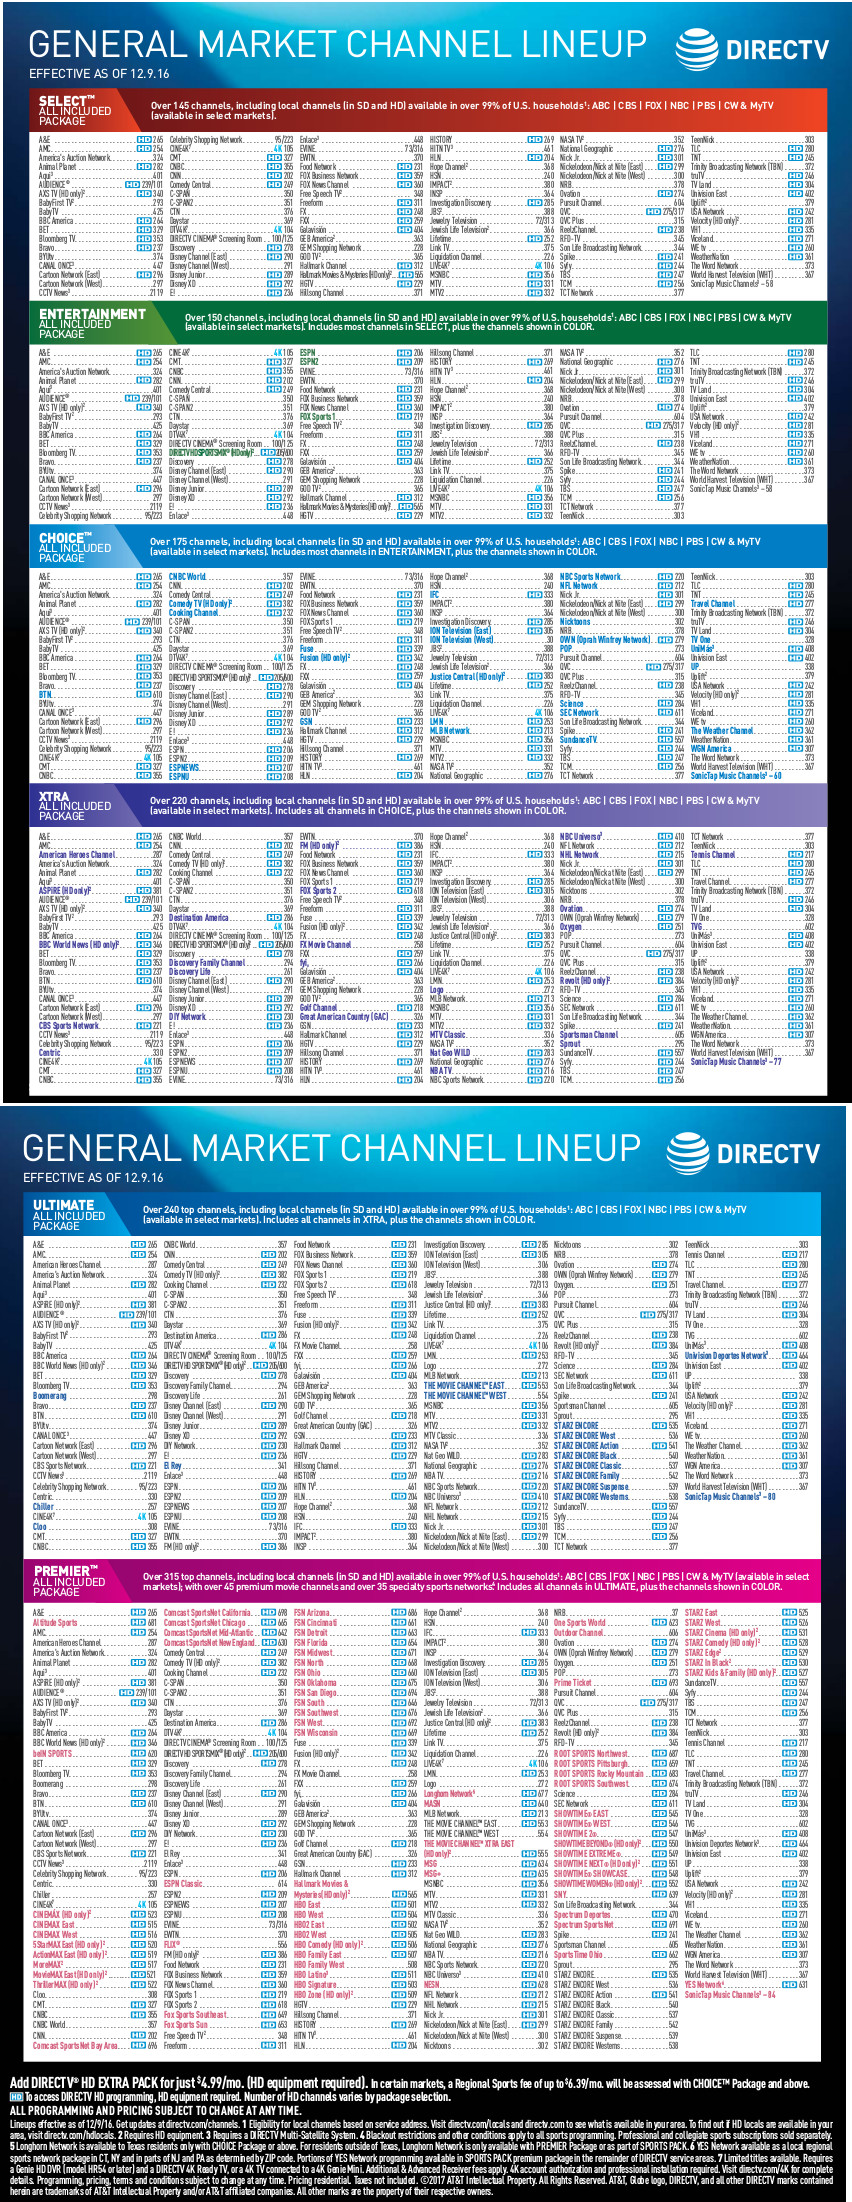 Ackley IA 50601 DirecTV Pricing Specials